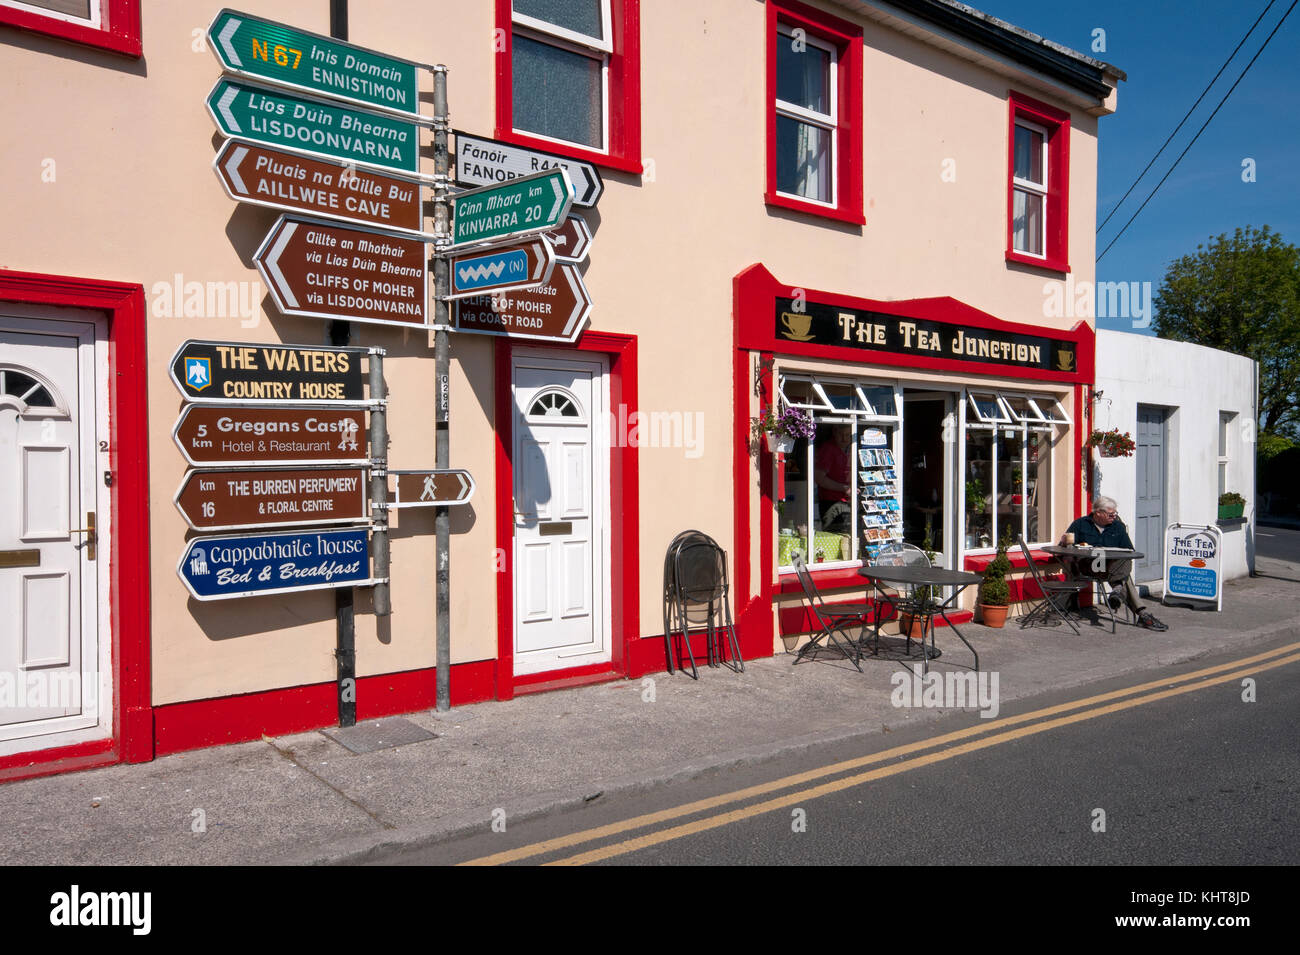 Road signs and tea house in Ballyvaughan, County Clare, Ireland - Stock Image